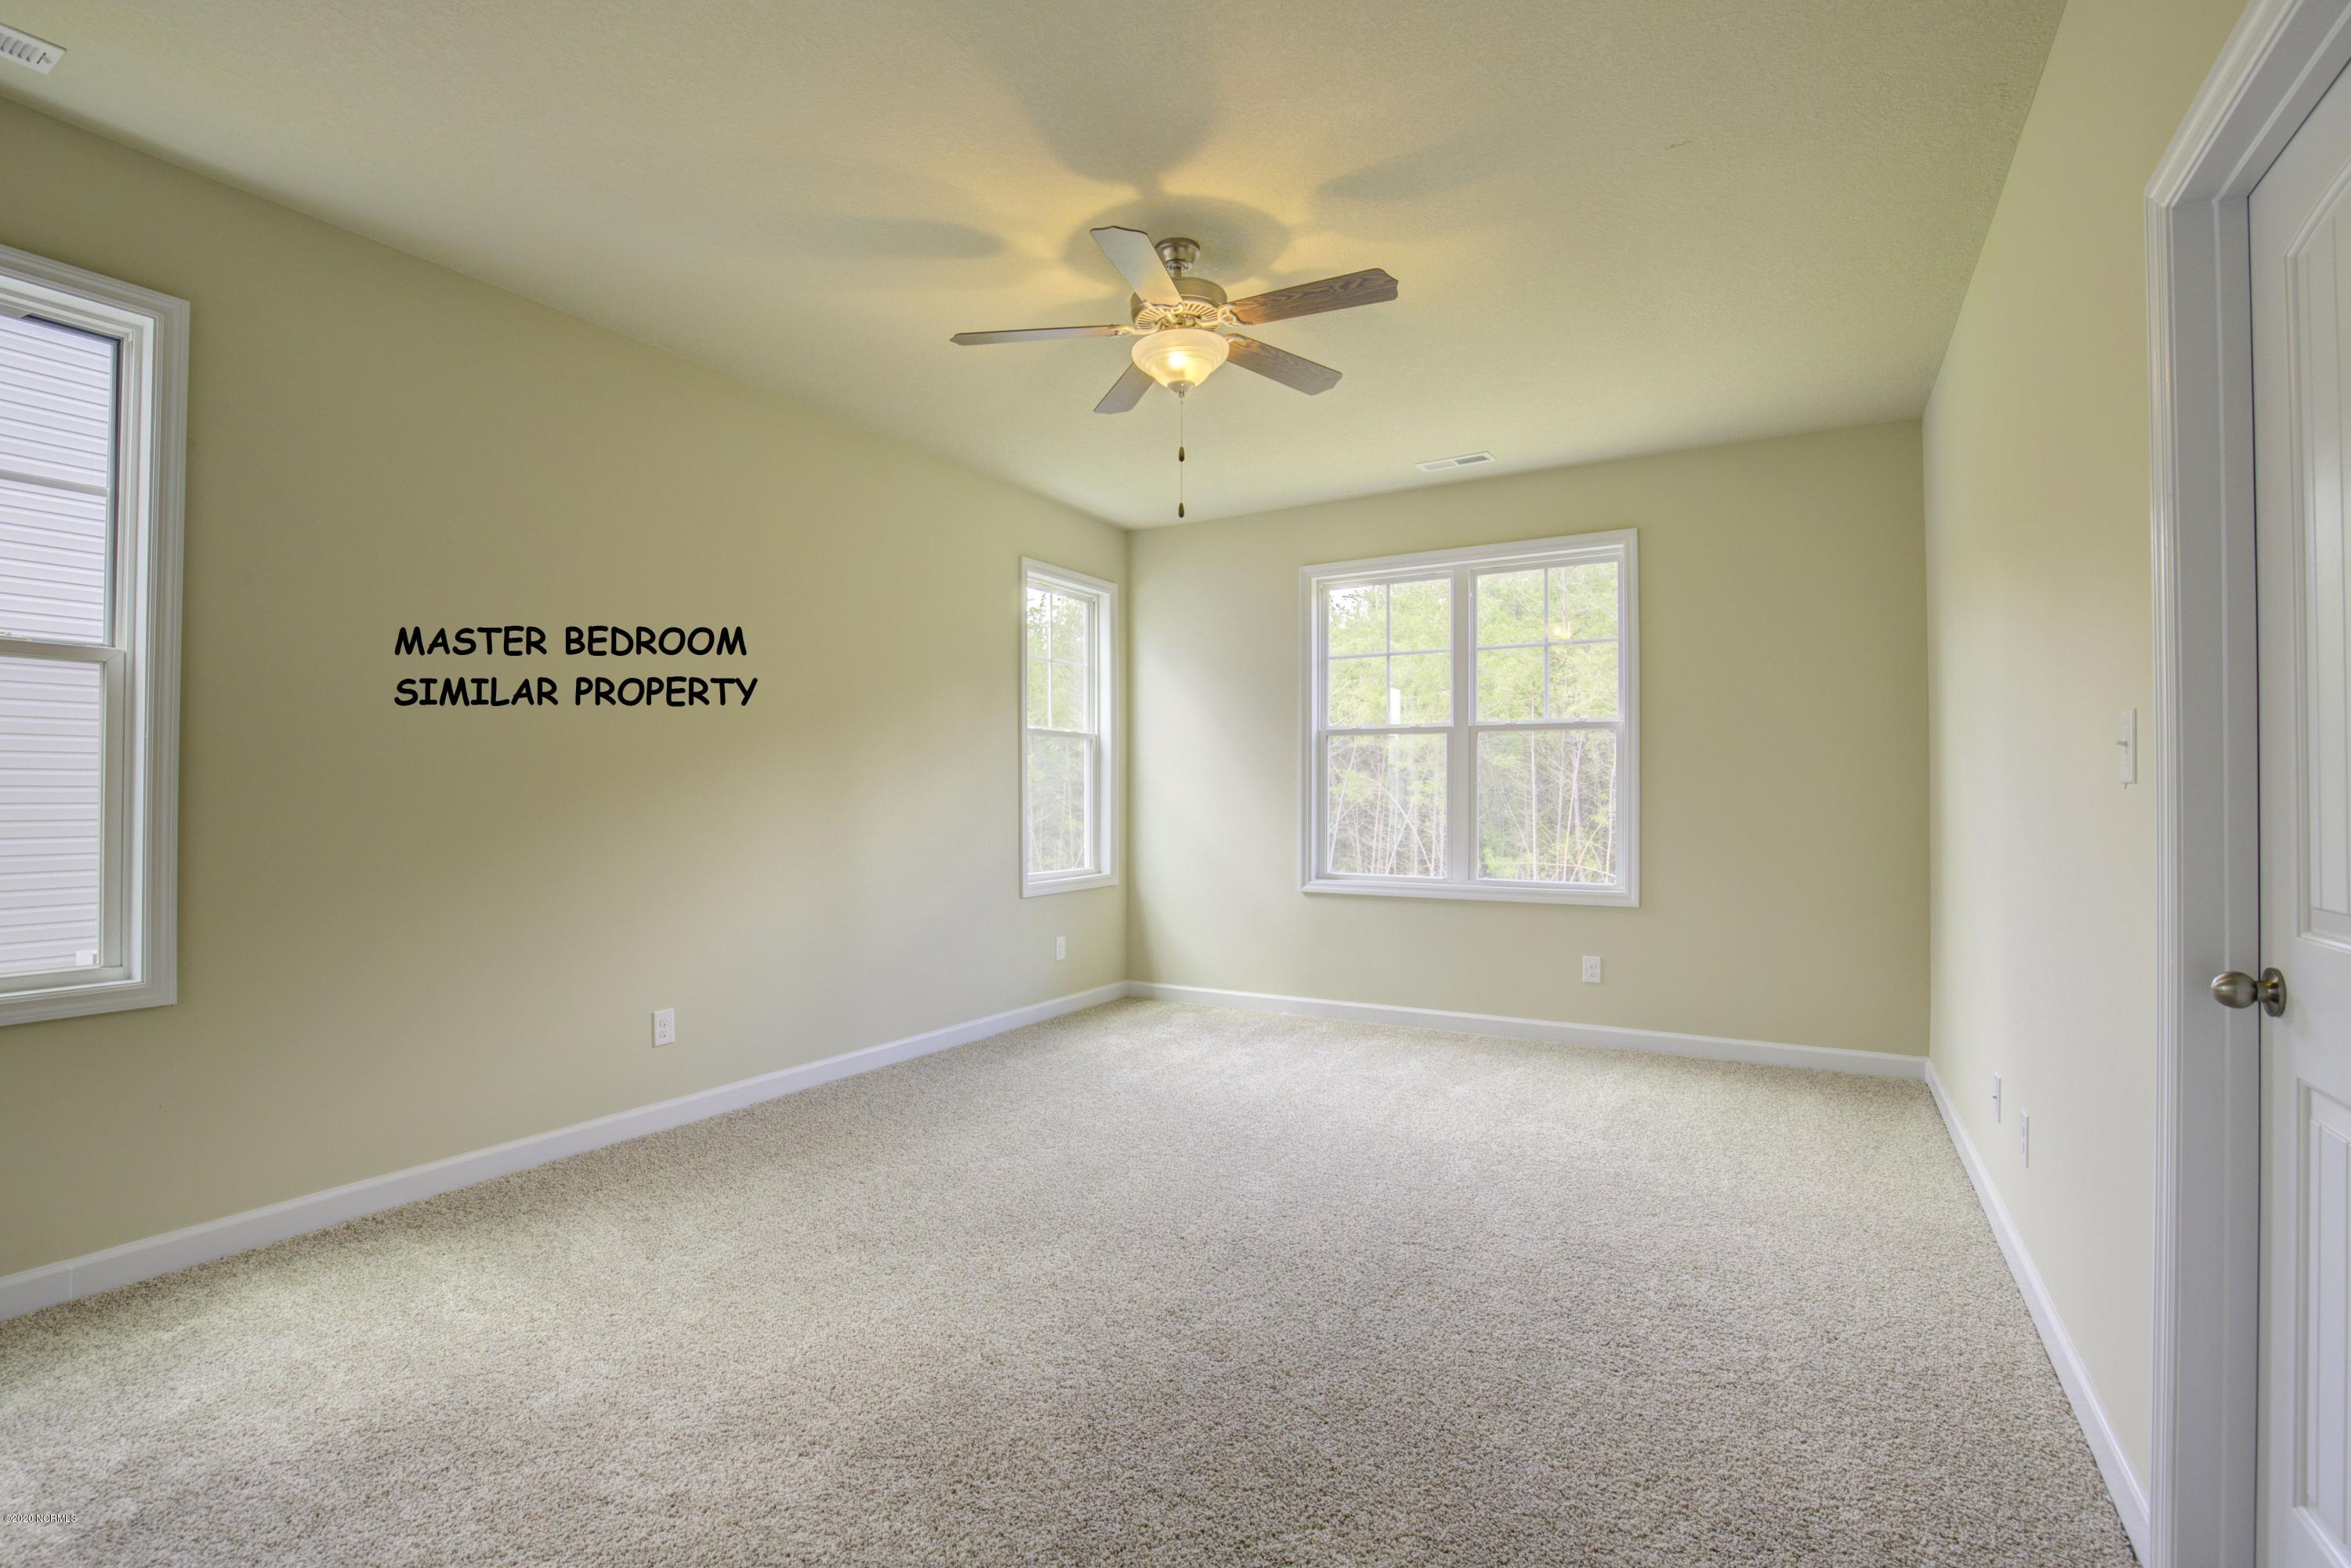 499 Shallotte Lane, Holly Ridge, North Carolina 28445, 3 Bedrooms Bedrooms, ,2 BathroomsBathrooms,Residential,For Sale,Shallotte,100228143